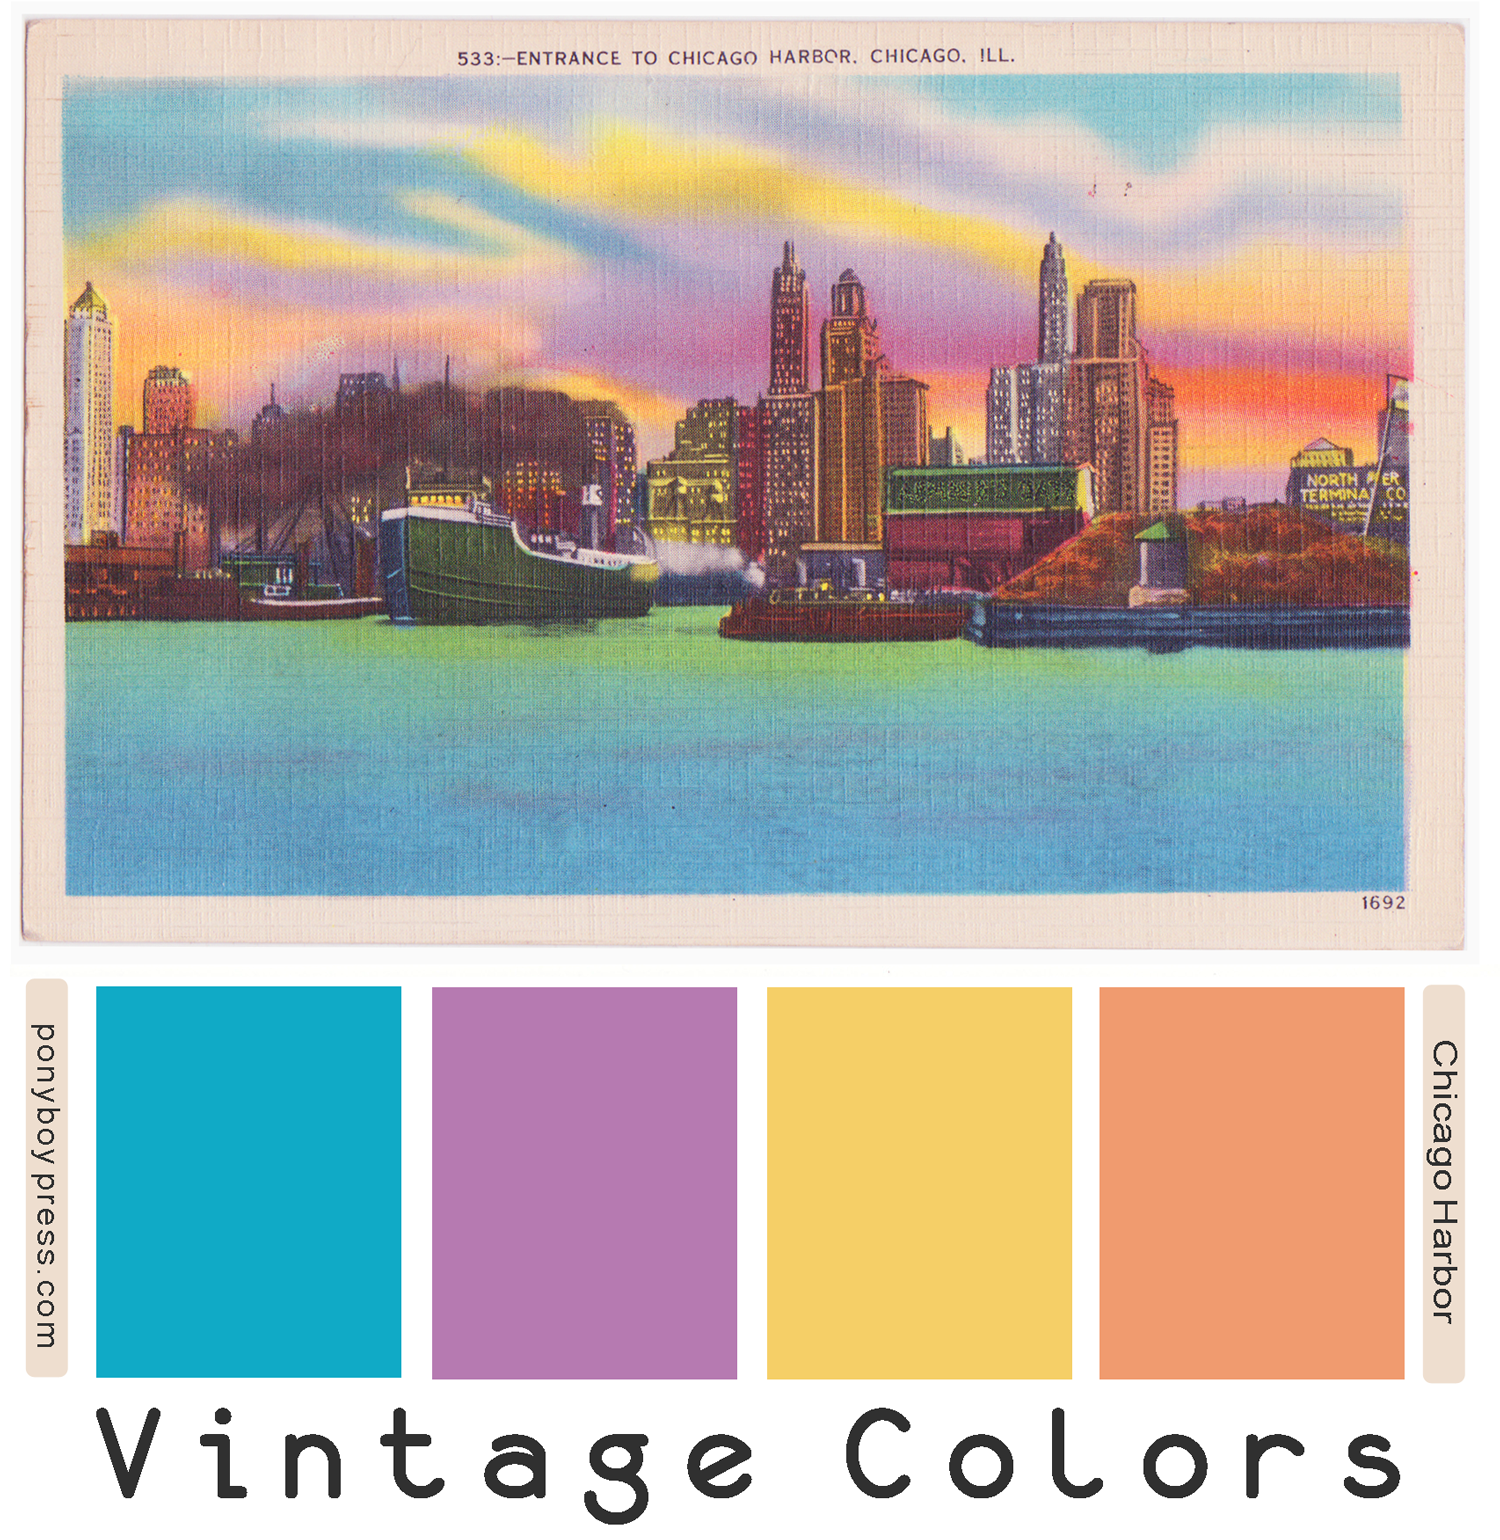 Vintage Color Palettes - Chicago Harbor - ponyboypress.com